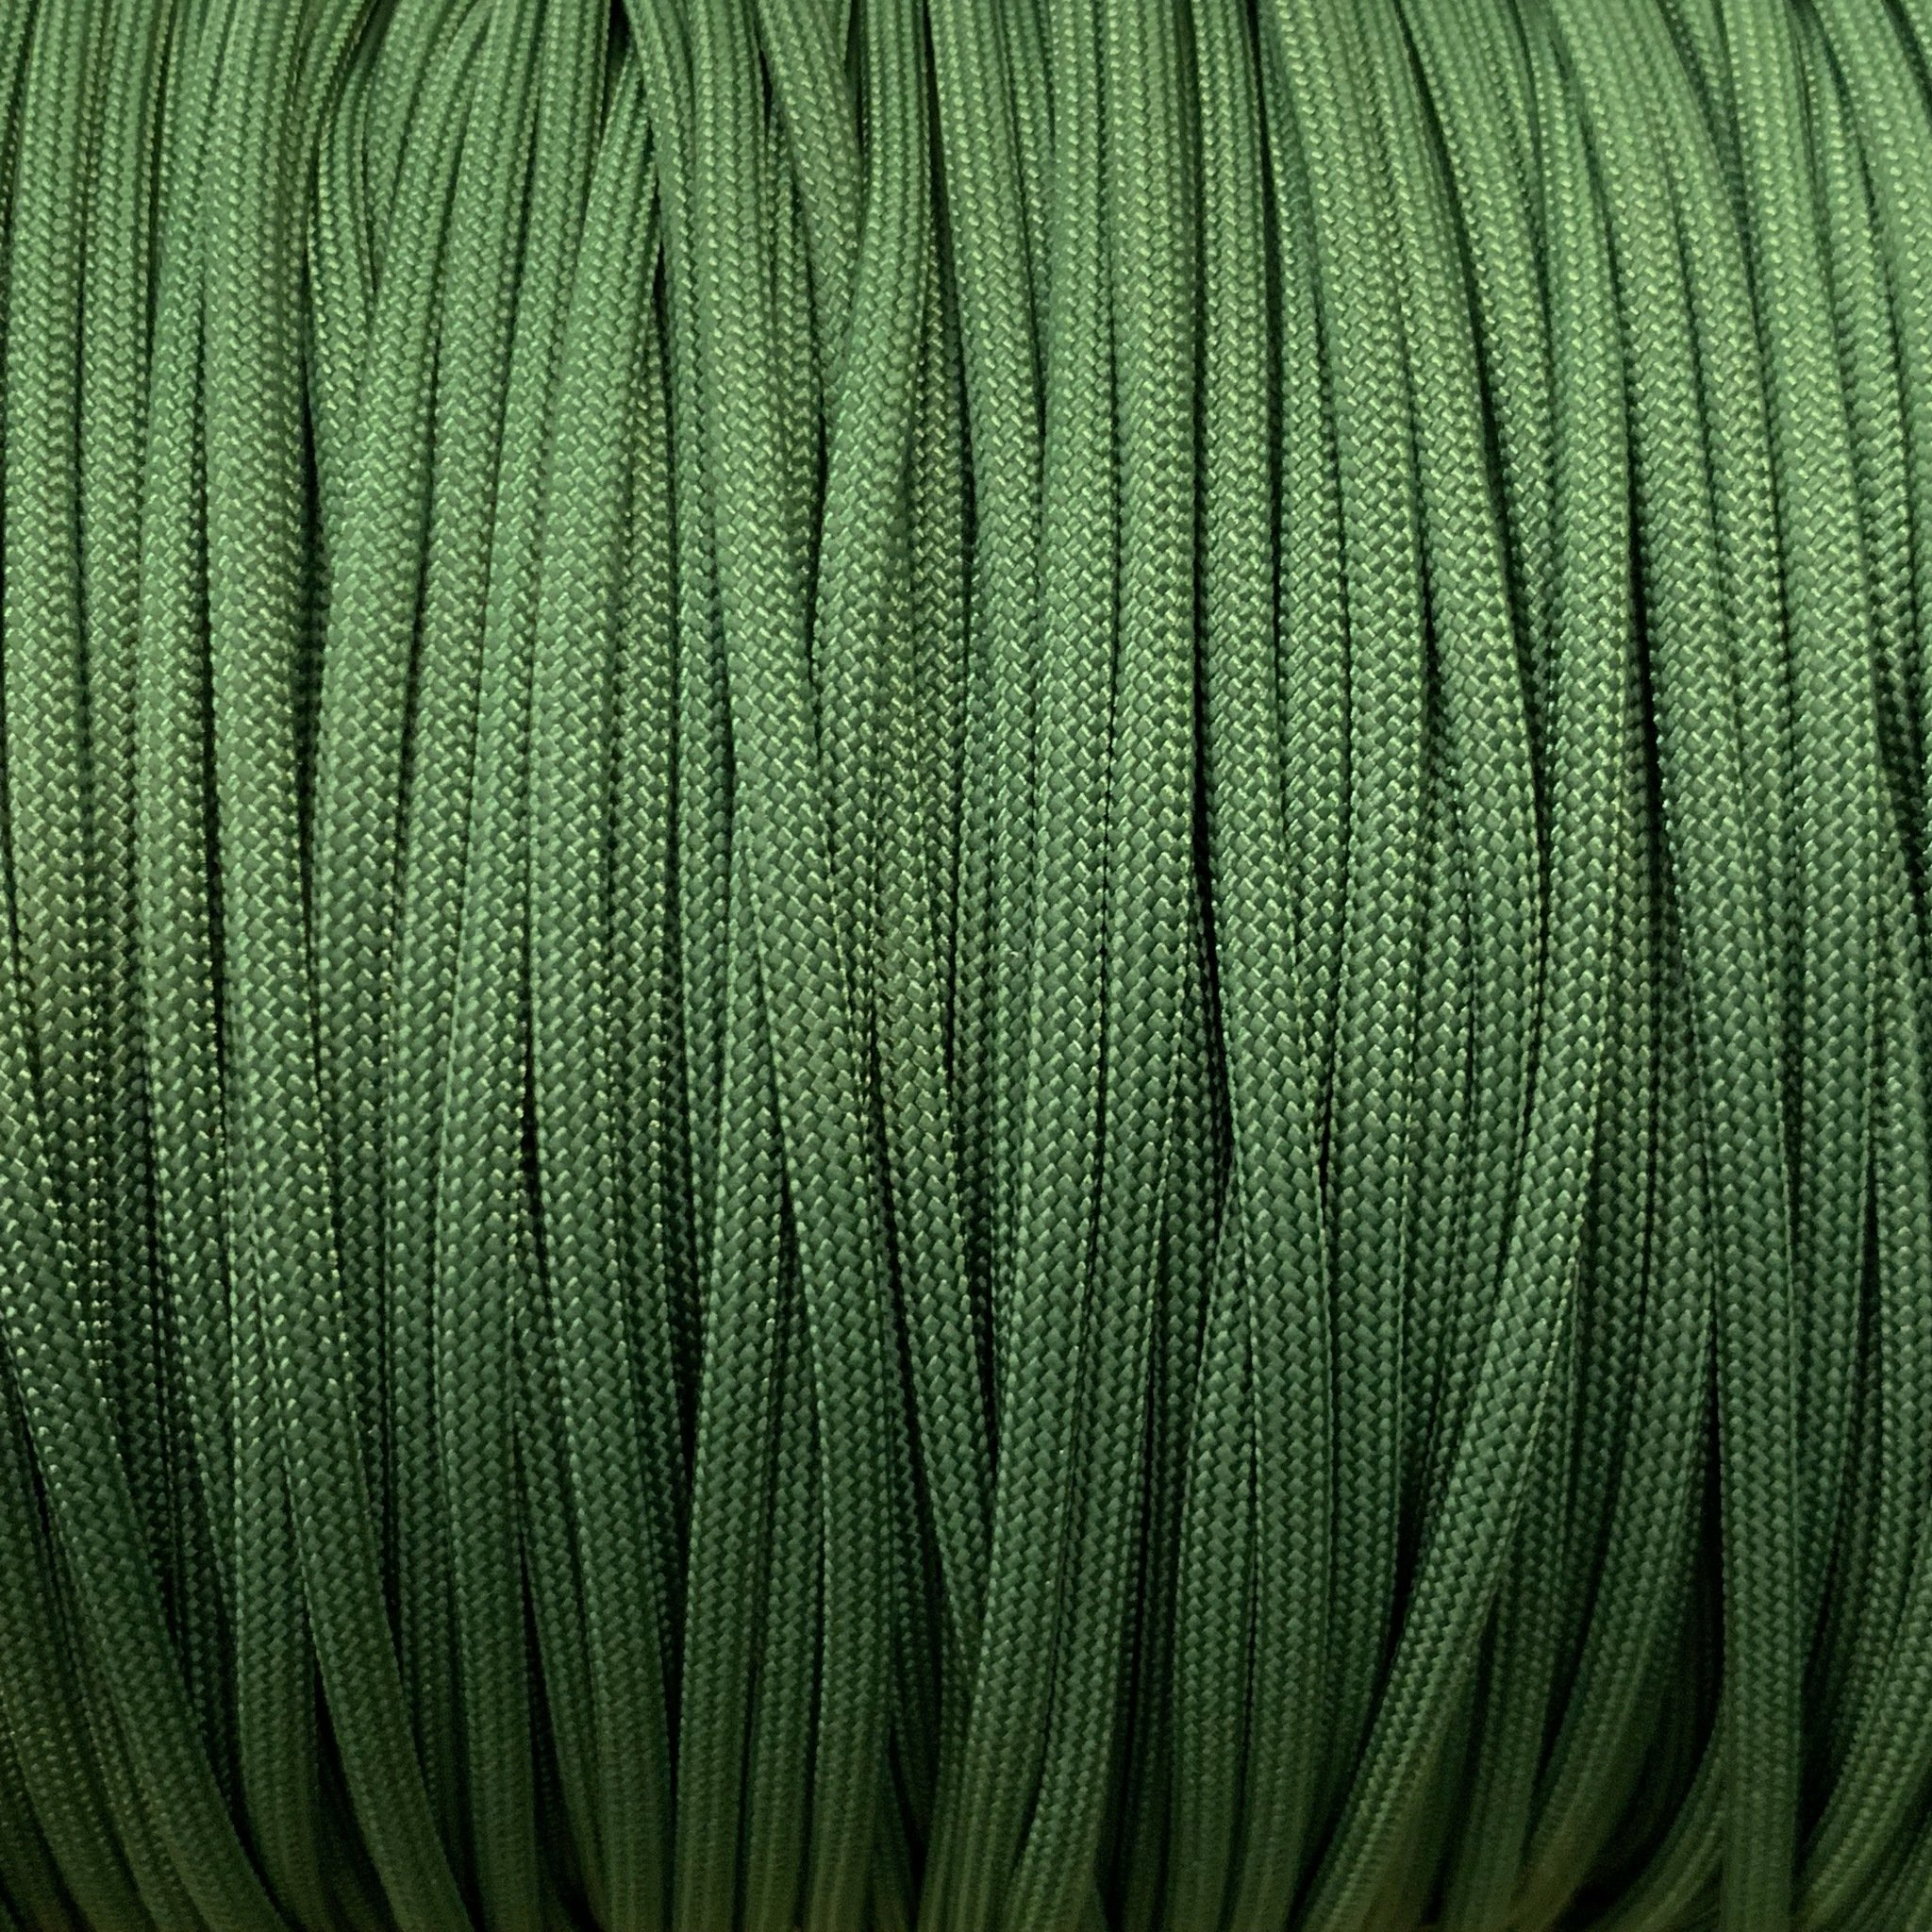 Fern Green // Paracord 550 (Typ3)